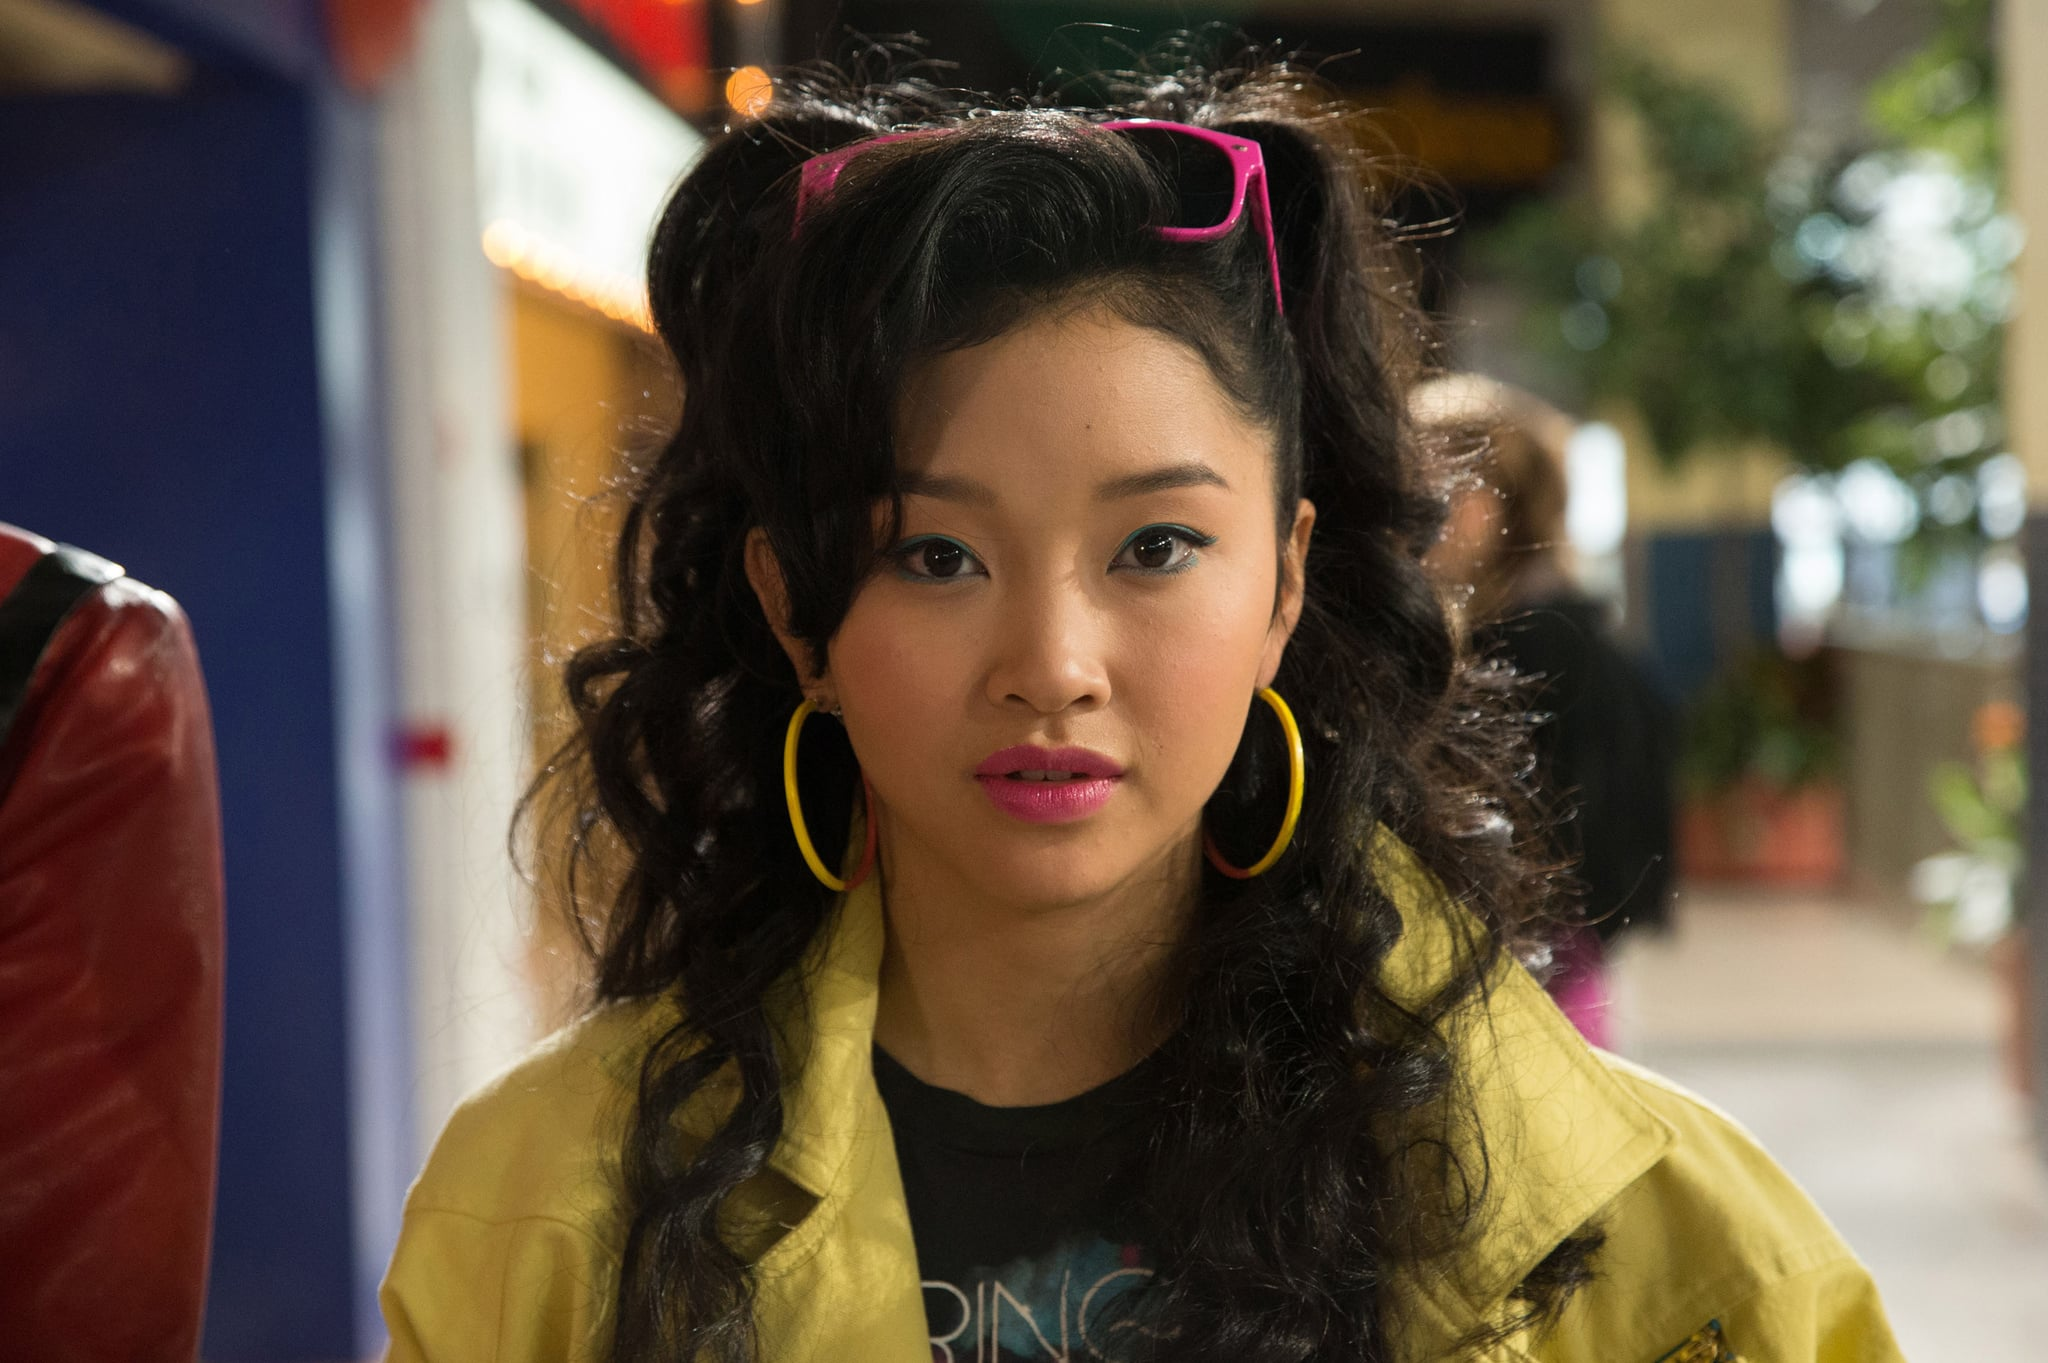 X-MEN: APOCALYPSE, Lana Condor, 2016. ph: Alan Markfield/TM and Copyright 20th Century Fox Film Corp. All rights reserved./courtesy Everett Collection